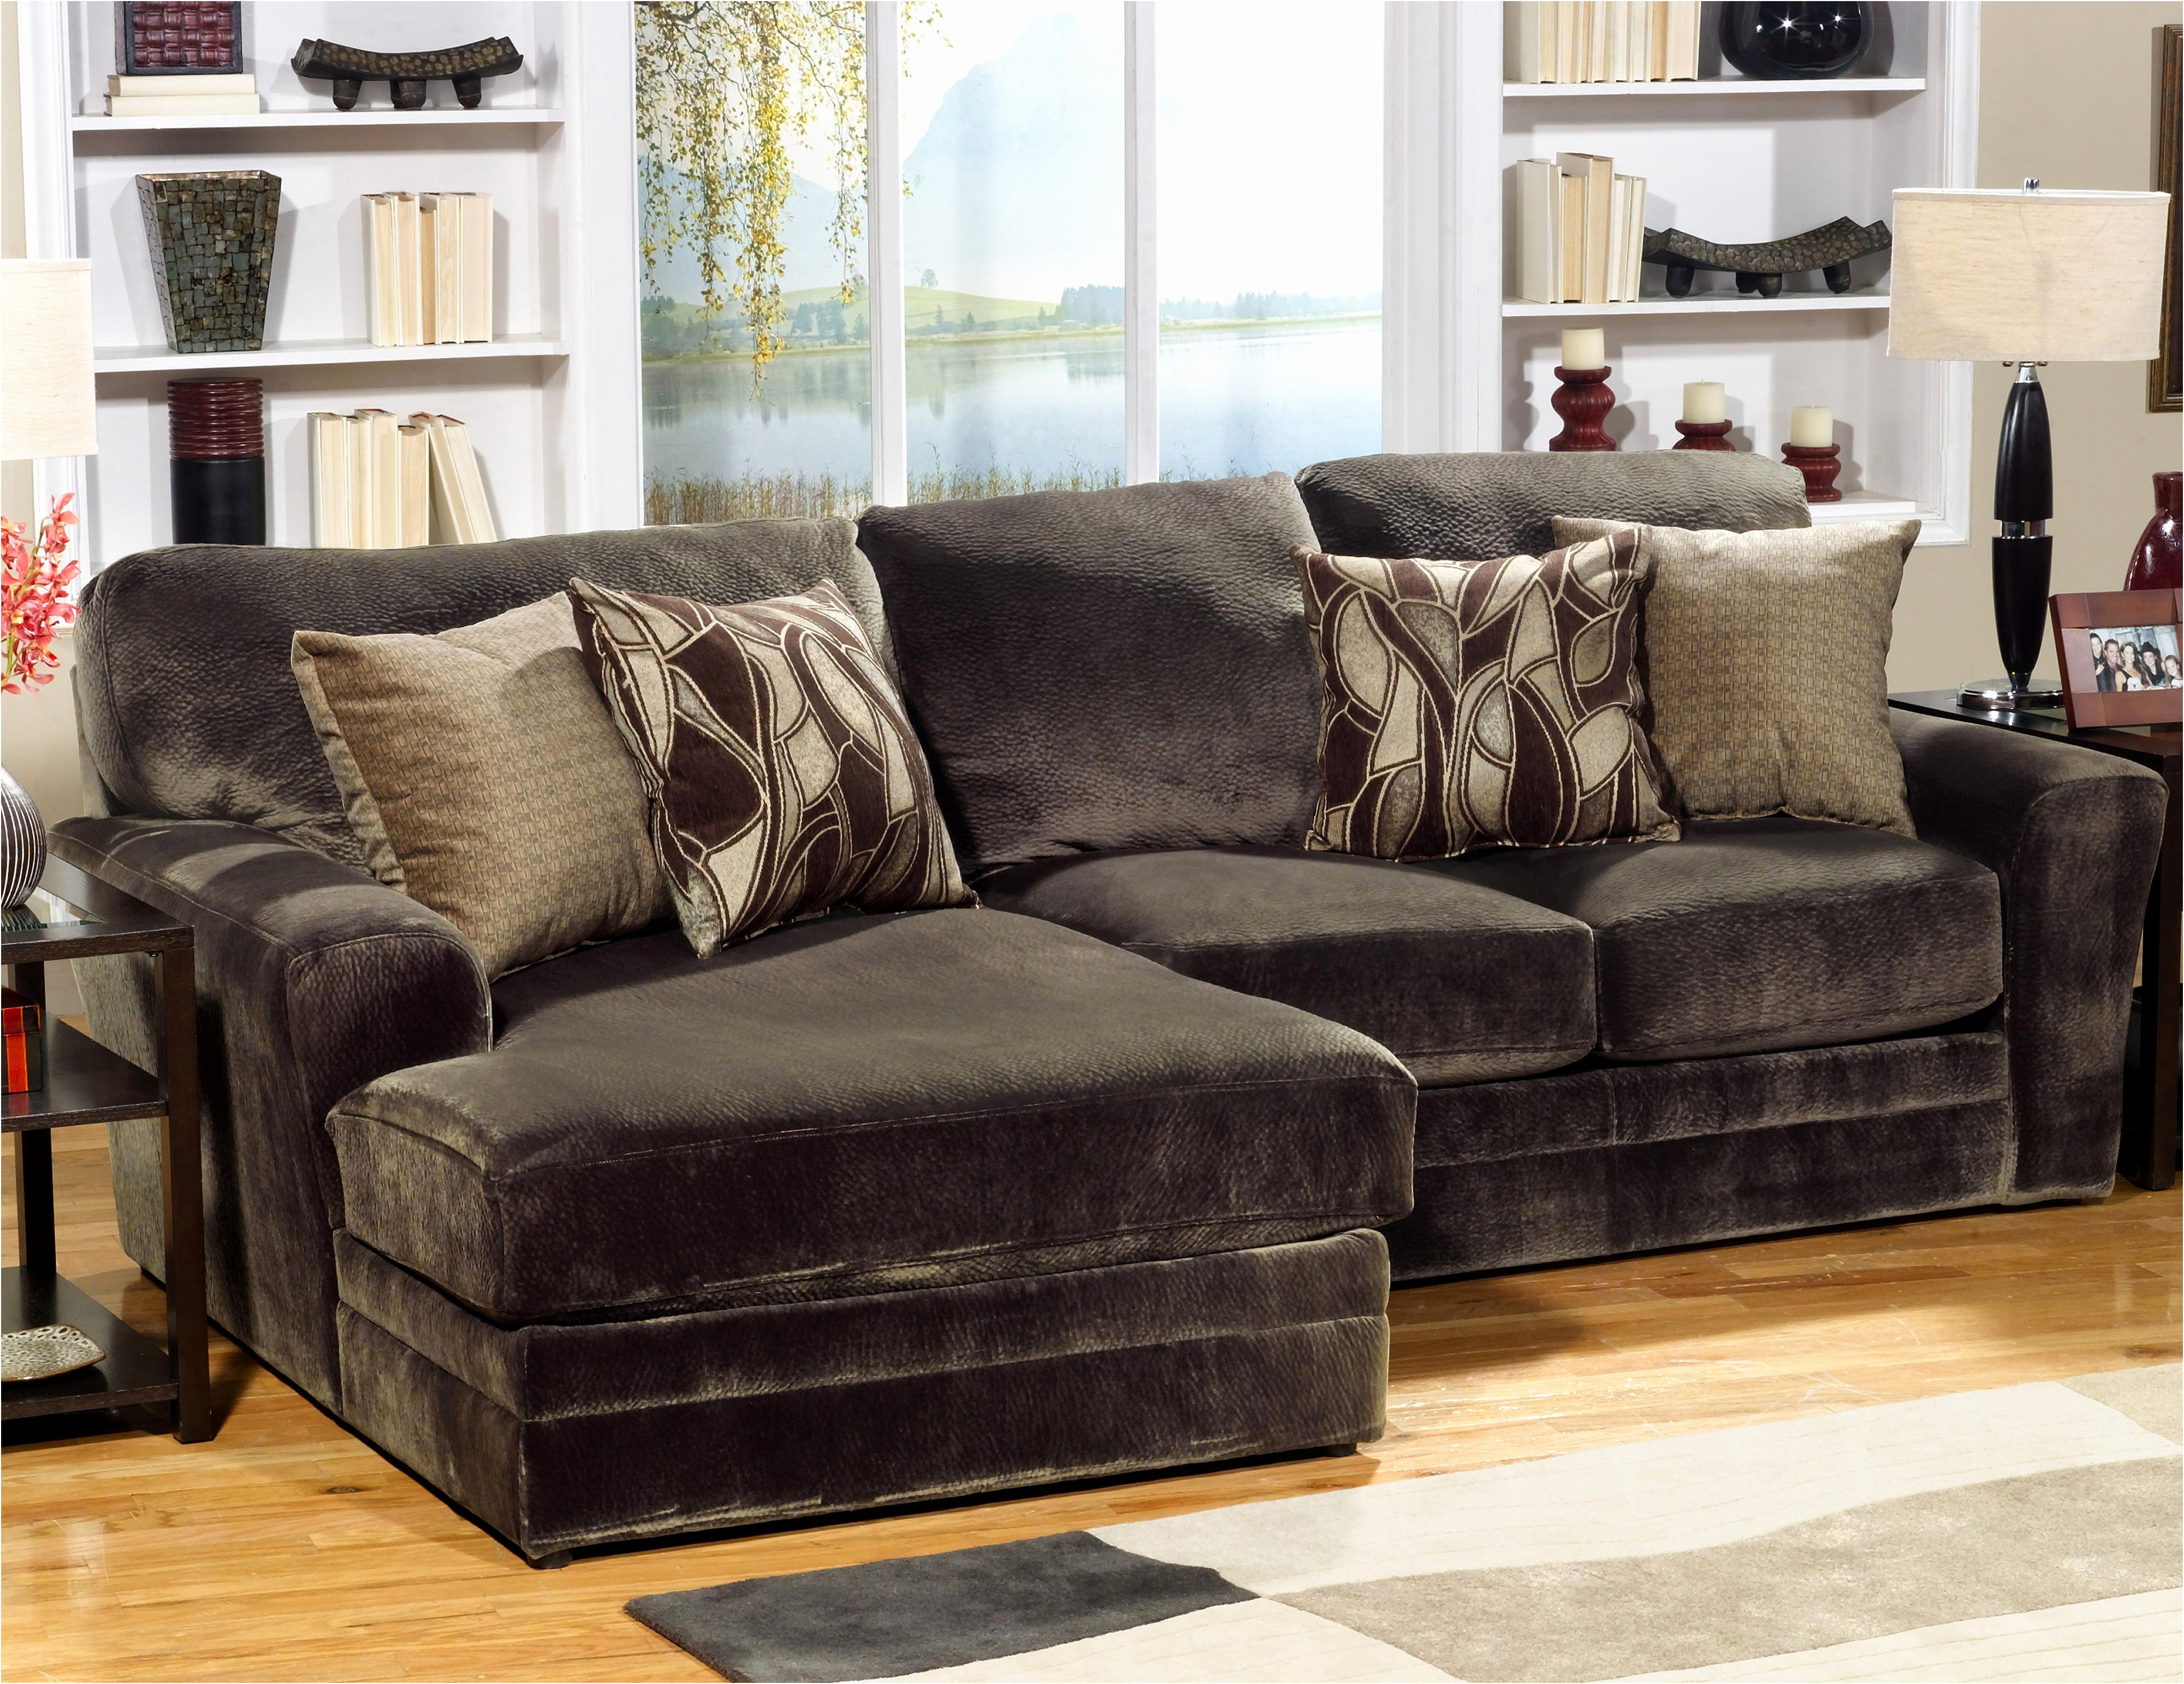 Trendy Evan Piece Sectional Sofa Set Centerfieldbar Two Frontenac Intended For Evan 2 Piece Sectionals With Raf Chaise (View 17 of 20)